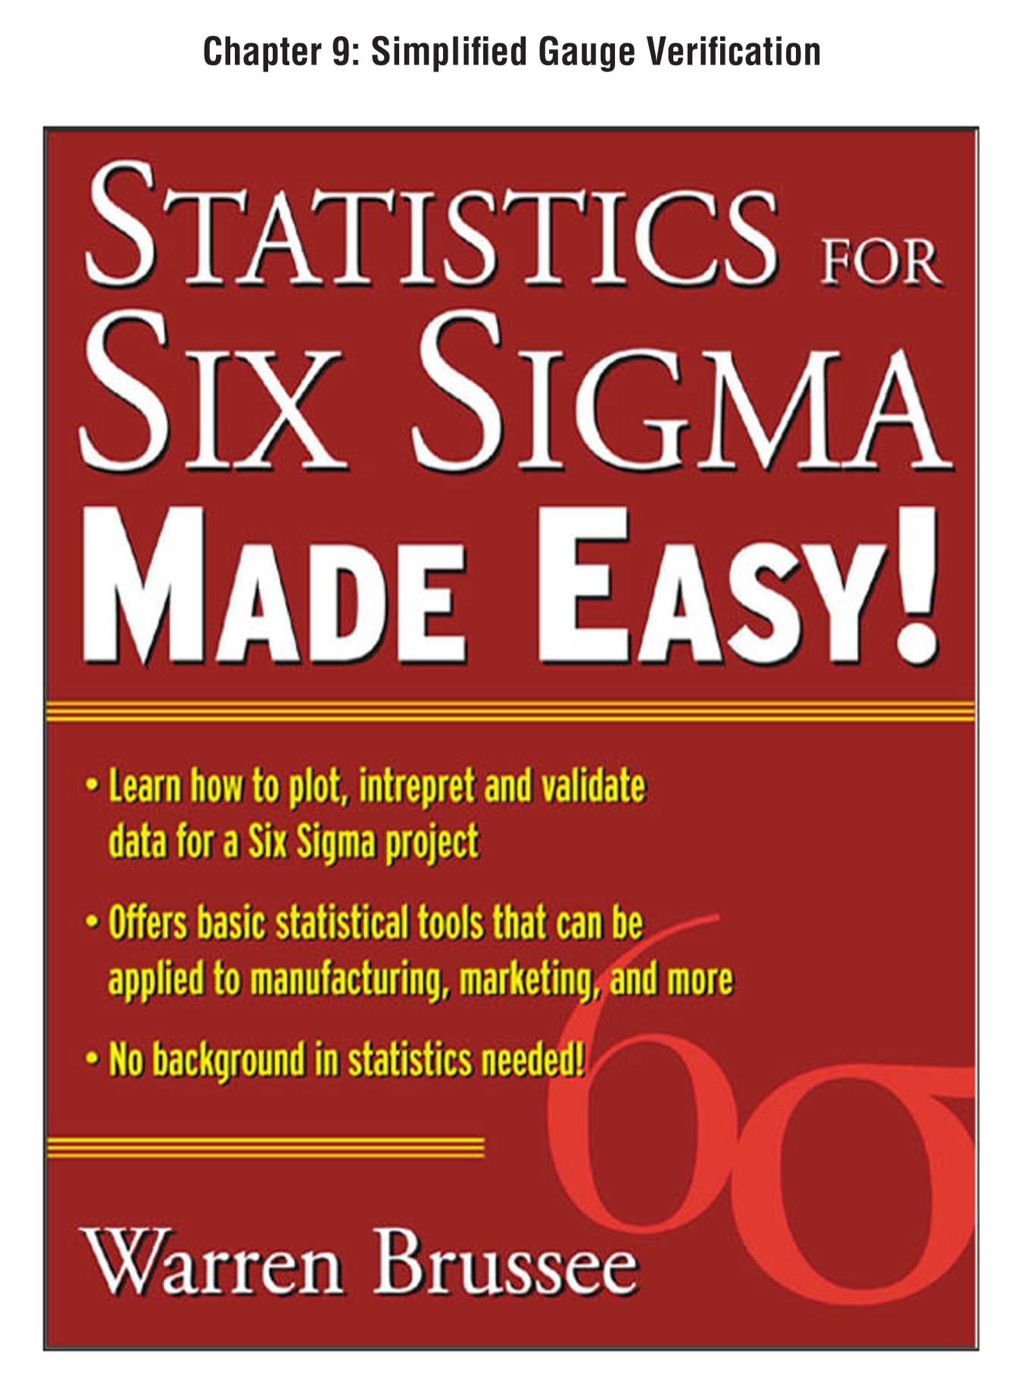 statistics for six sigma made easy chapter 9 simplified gauge verification ebook  [ 1024 x 1395 Pixel ]